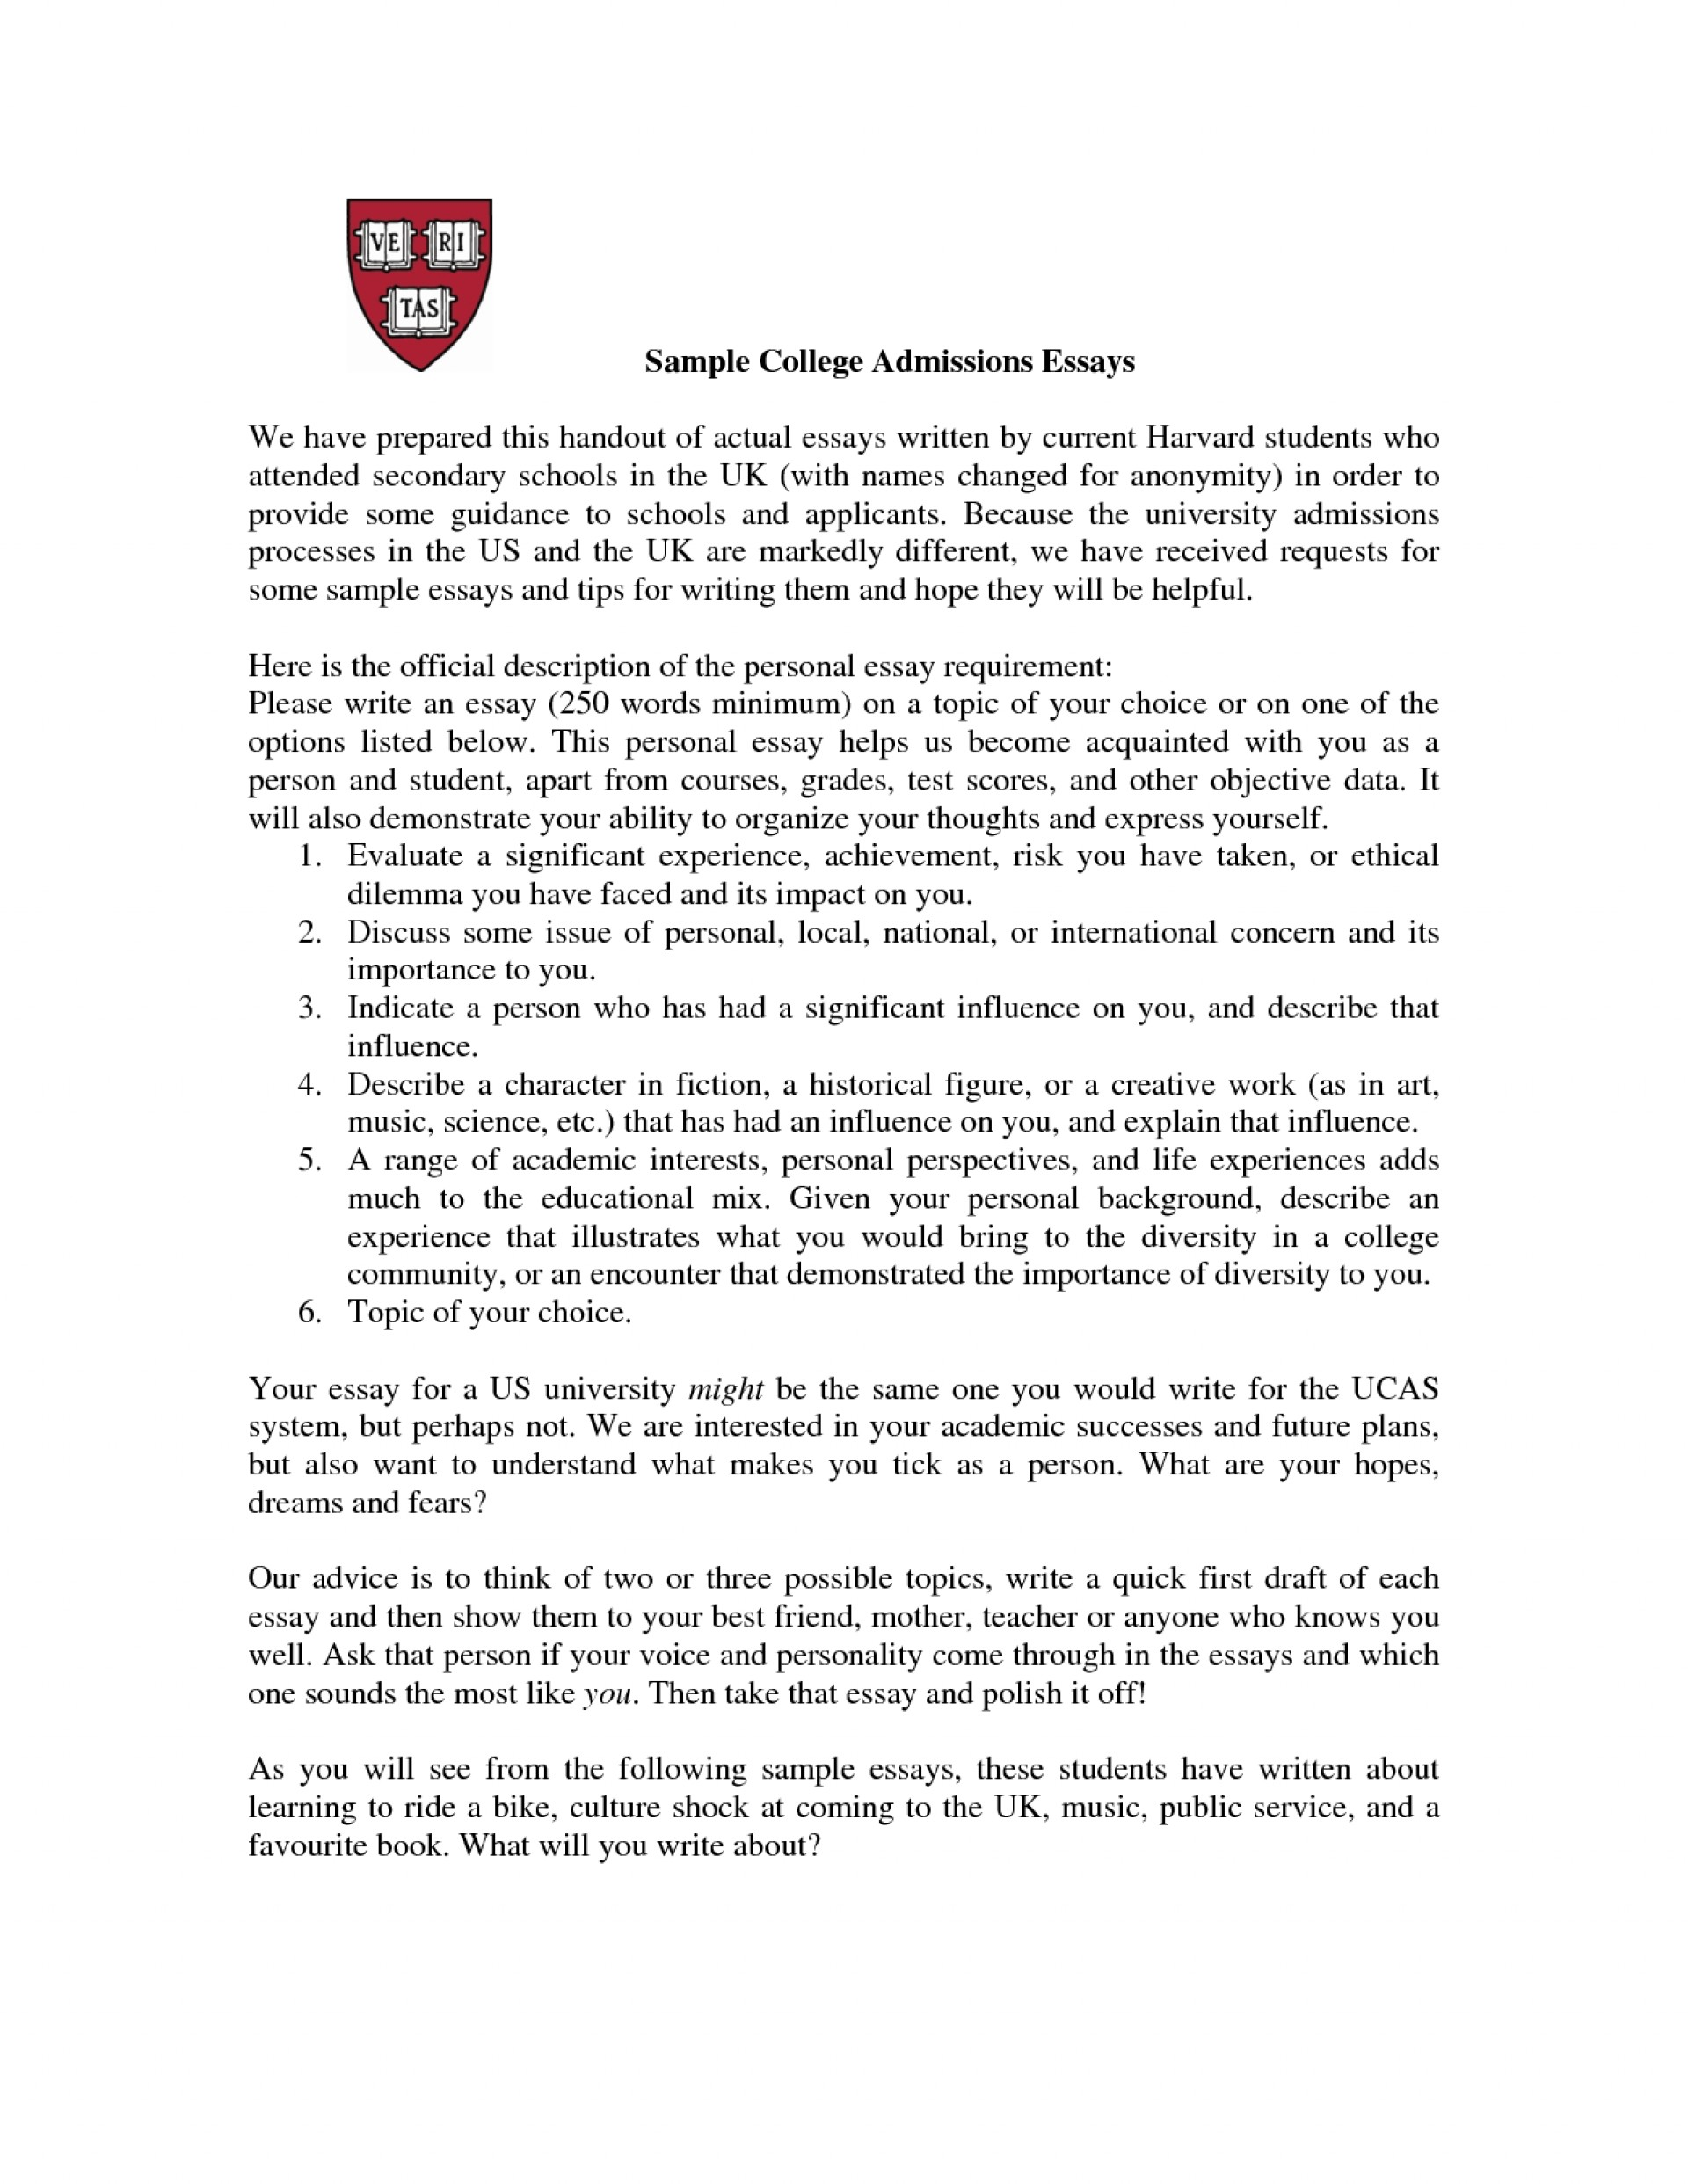 007 College Admission Essay 473129 Application Tips Beautiful Writing Common App Confidential 1920